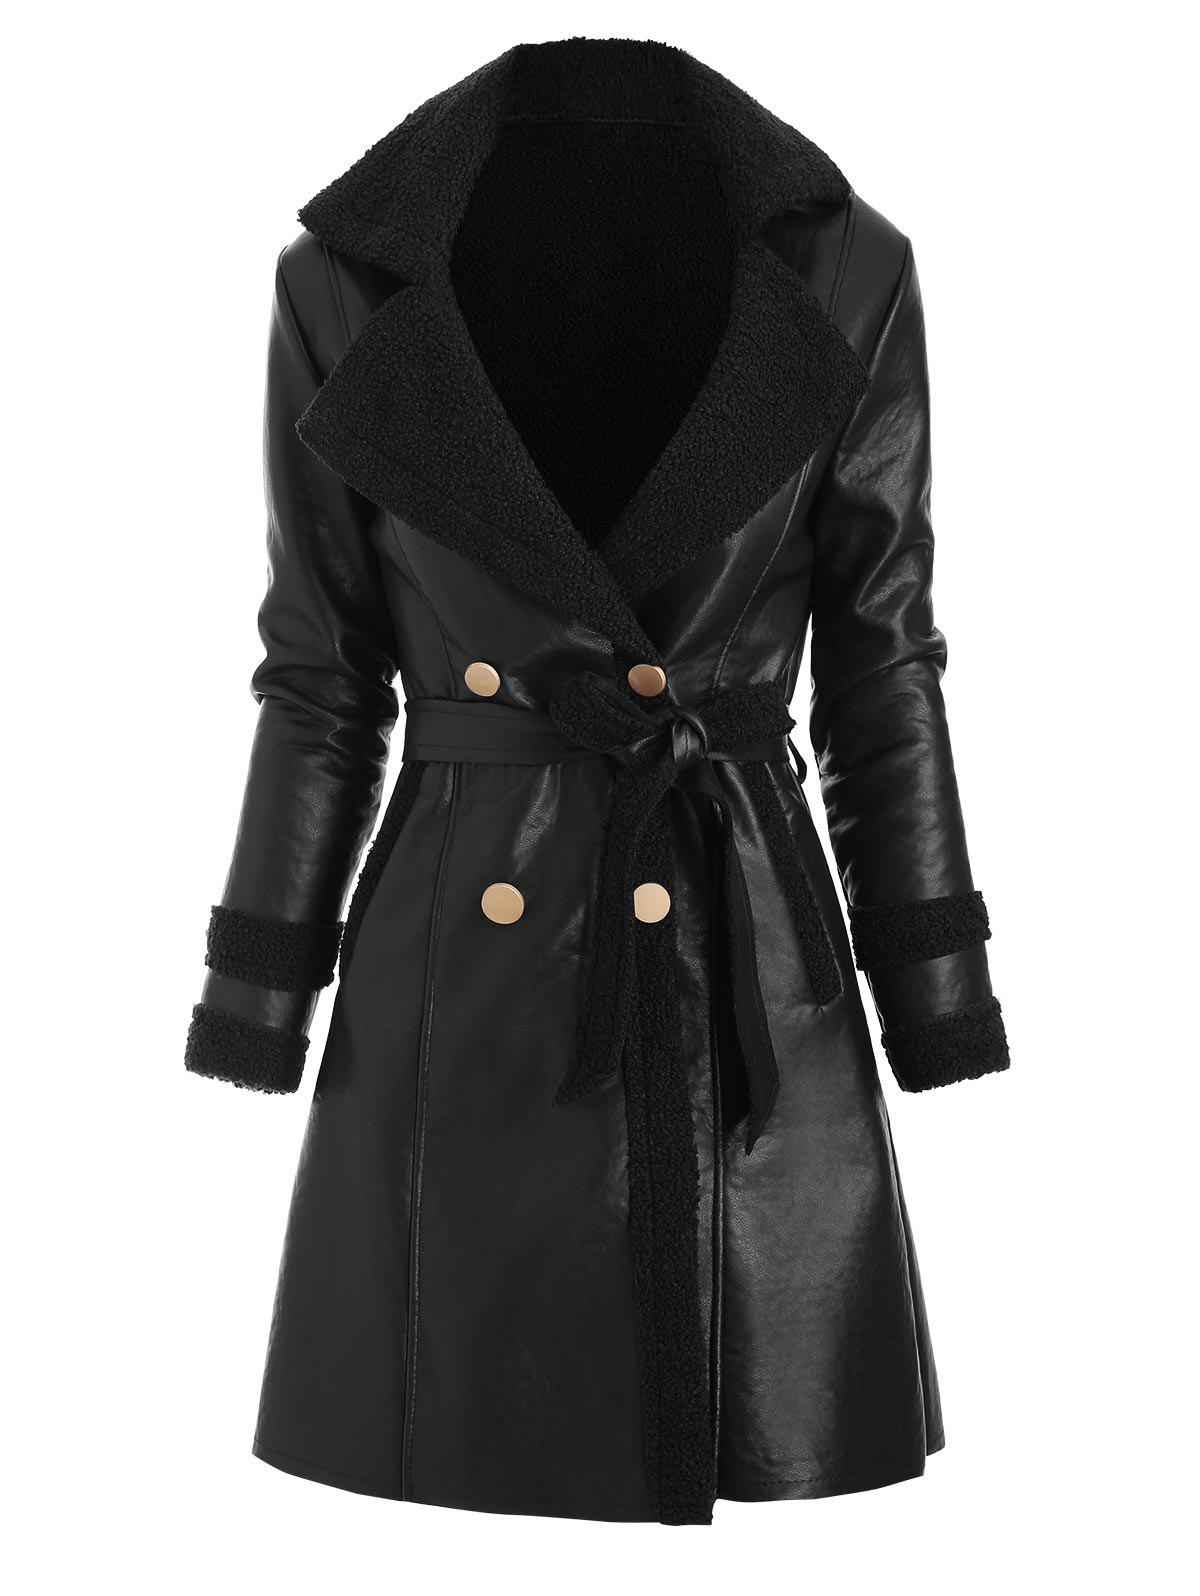 Faux Leather Shearling Insert Belted Pocket Coat - BLACK 2XL